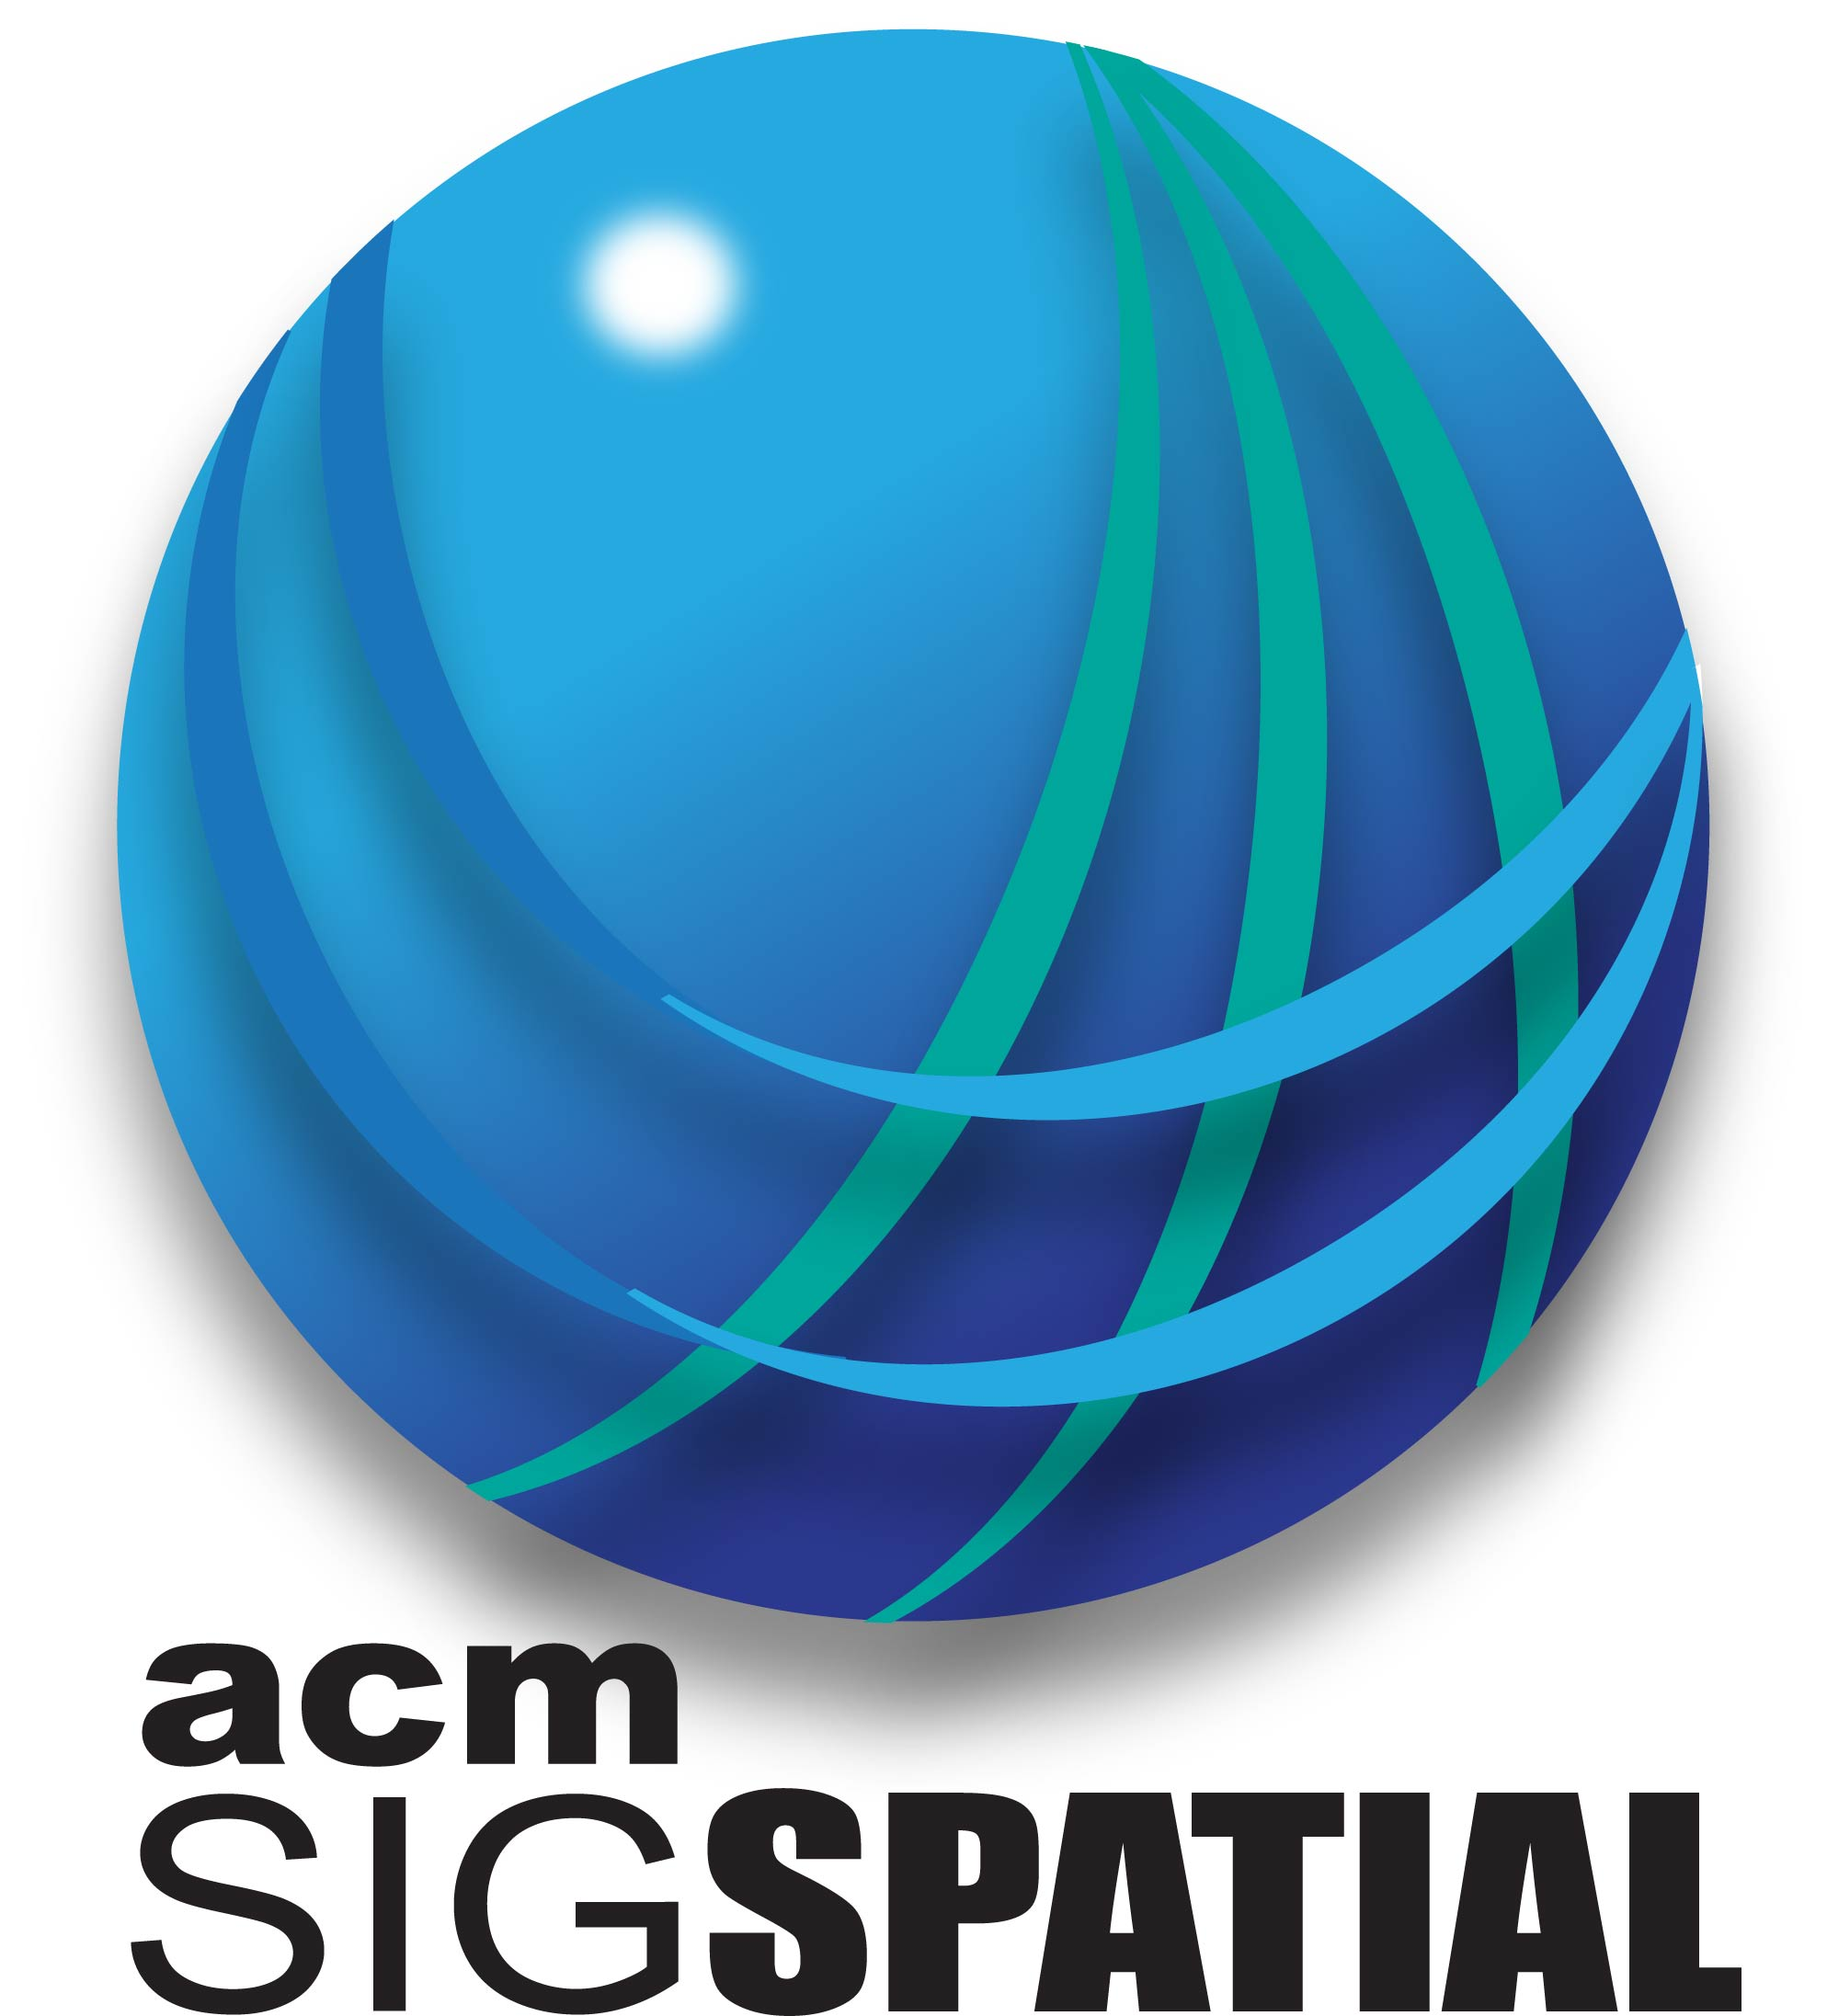 ACM SIGSPATIAL LOGO